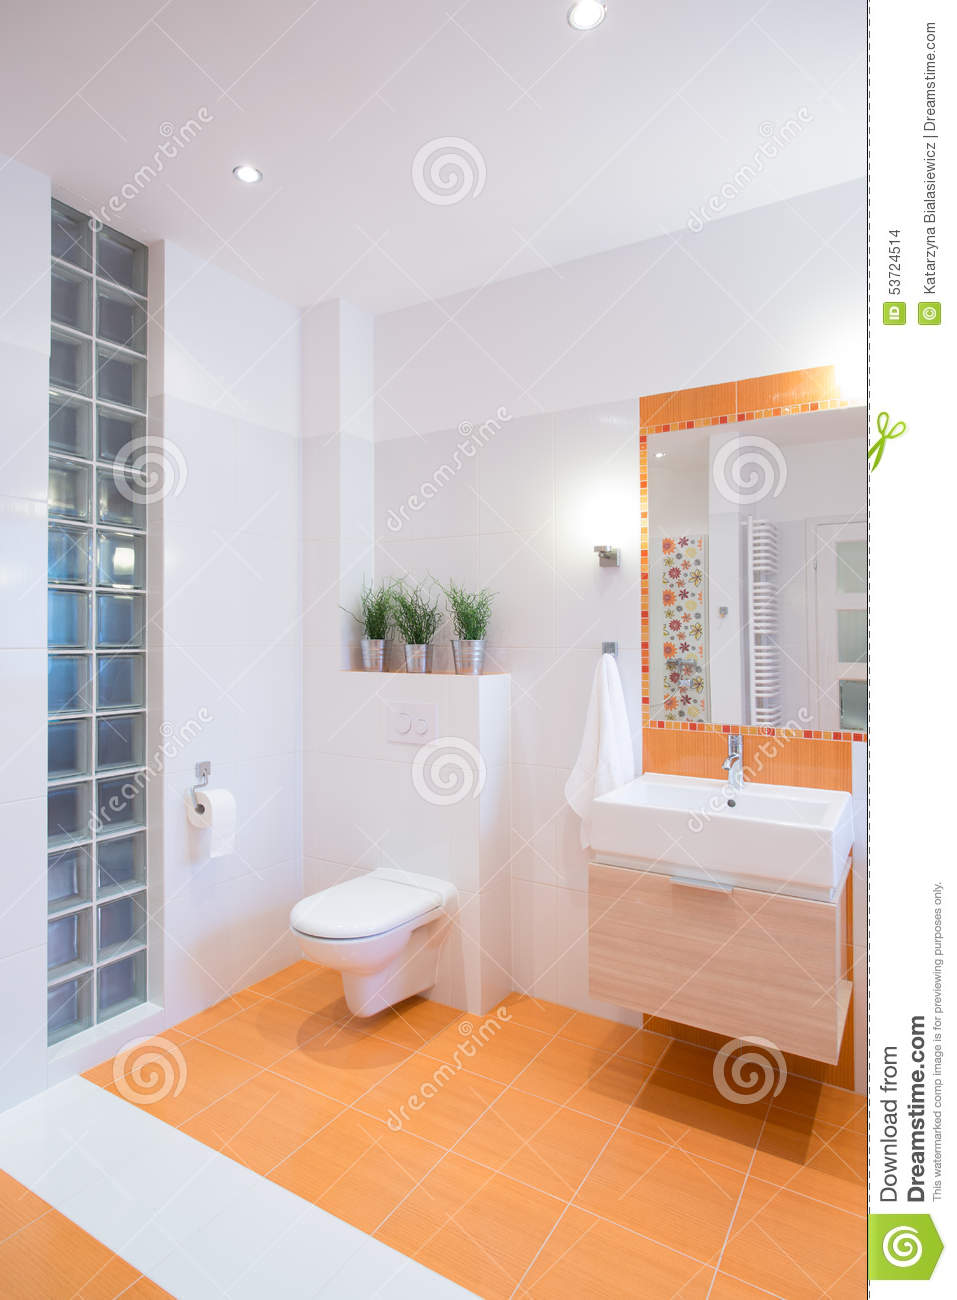 Conception color e de salle de bains photo stock image for Outil de conception salle de bain